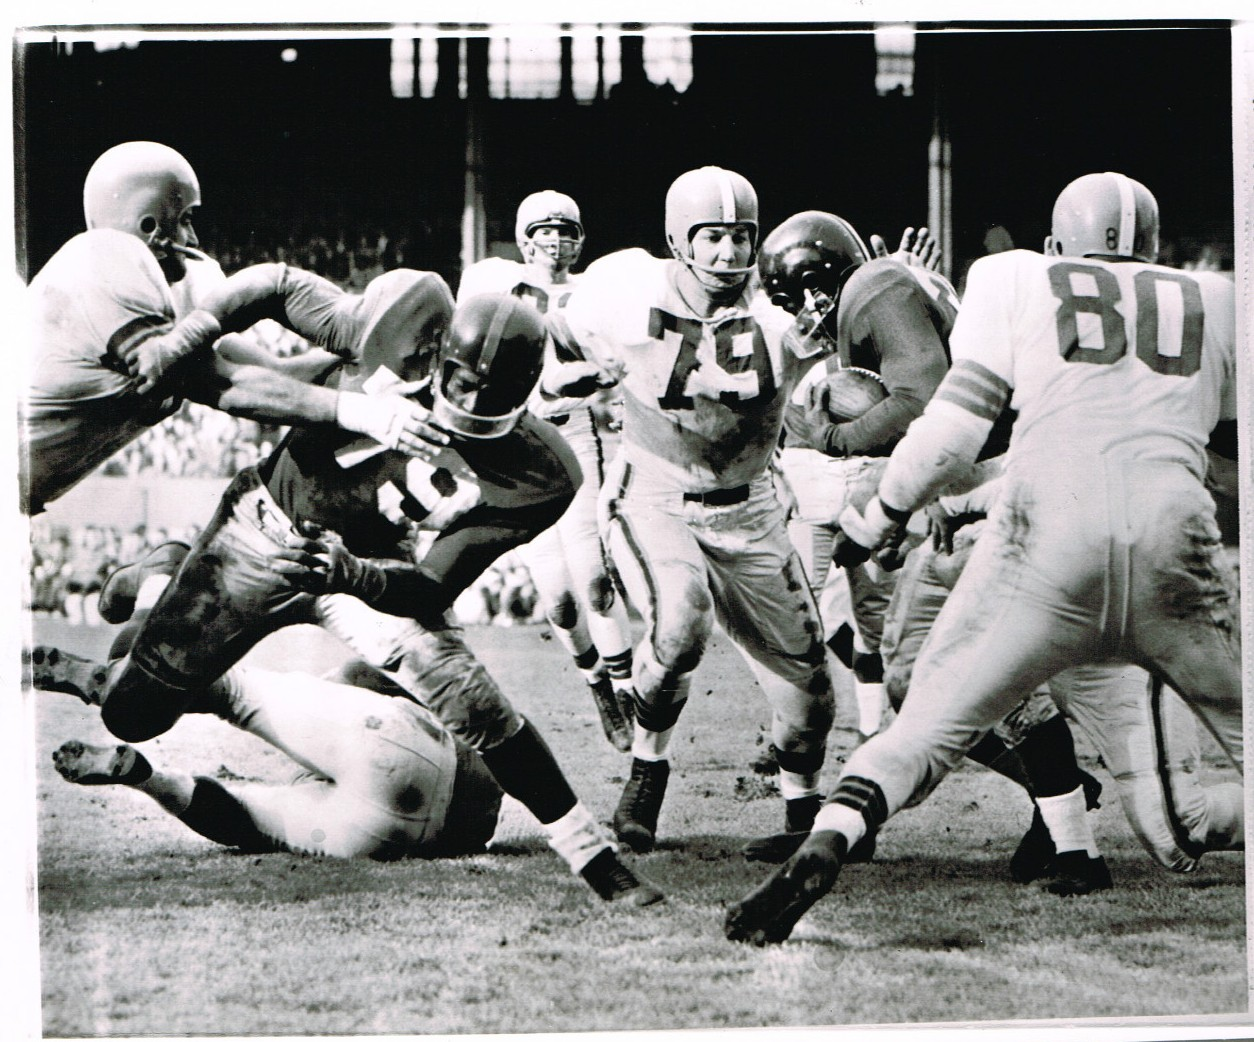 New York Giants at Cleveland Brown (November 6, 1955), Rosey Brown (79)